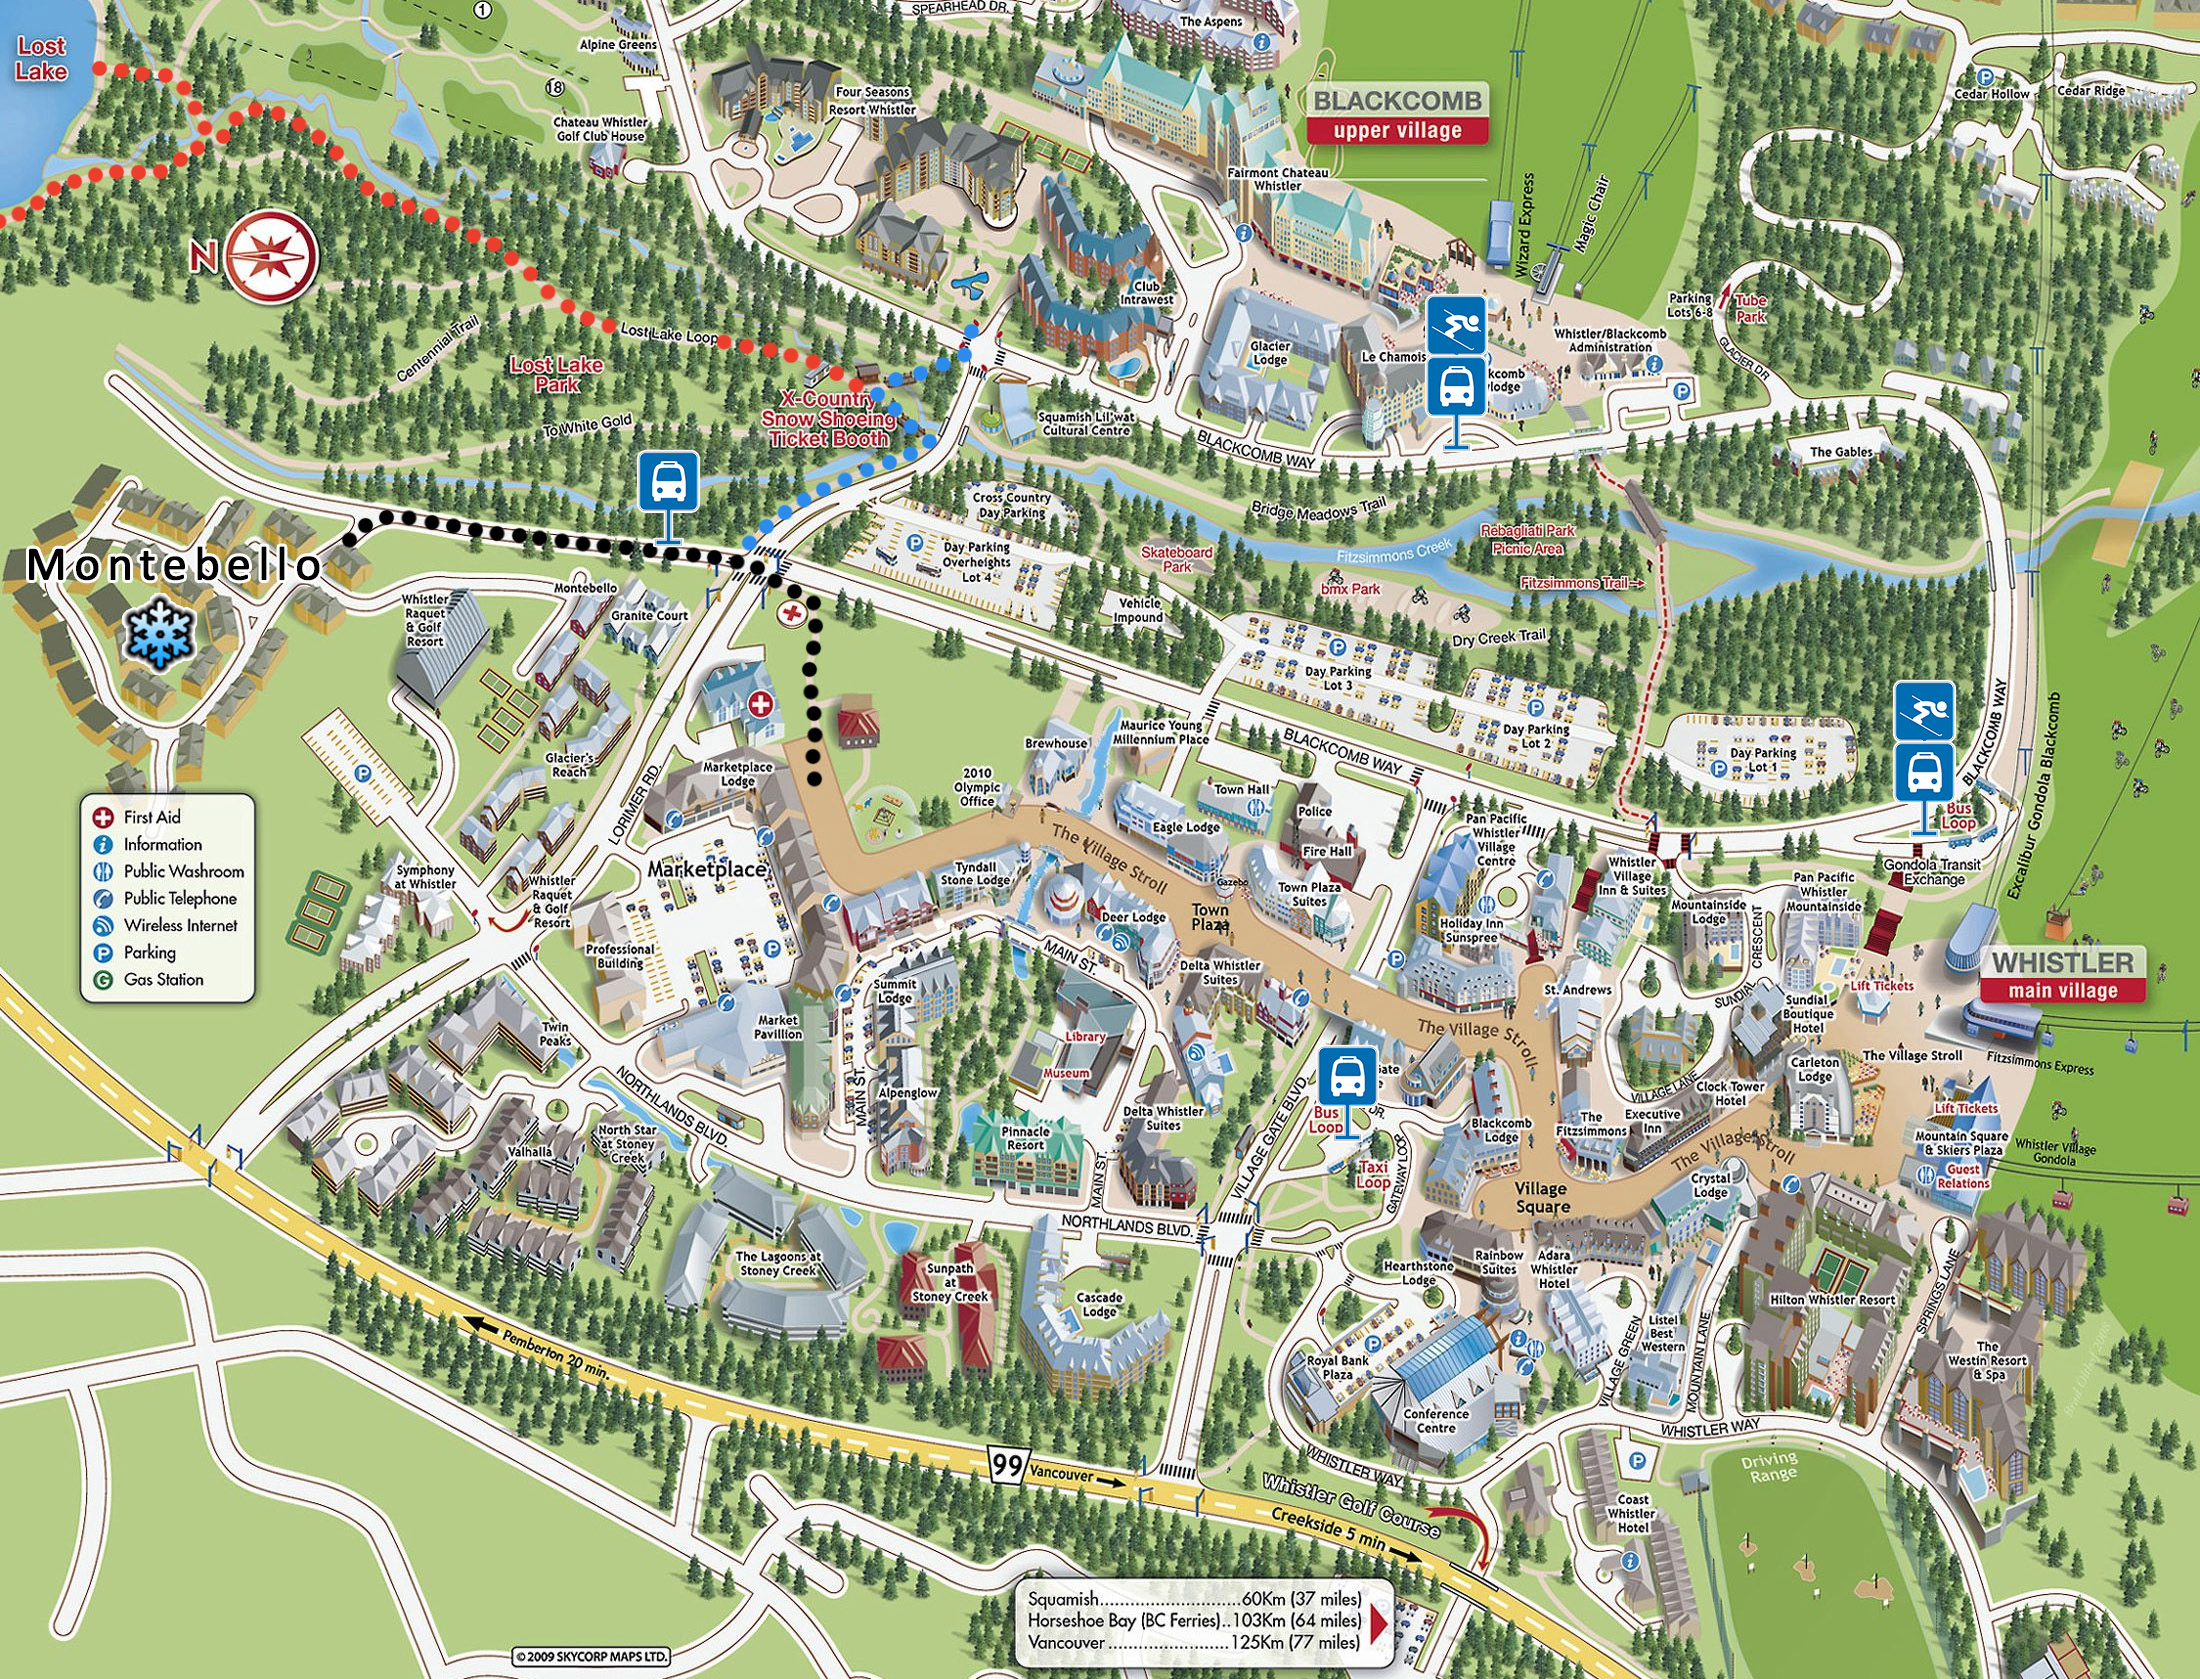 Whistler Village Map Whistler Village Map | Our Whistler Retreat Whistler Village Map